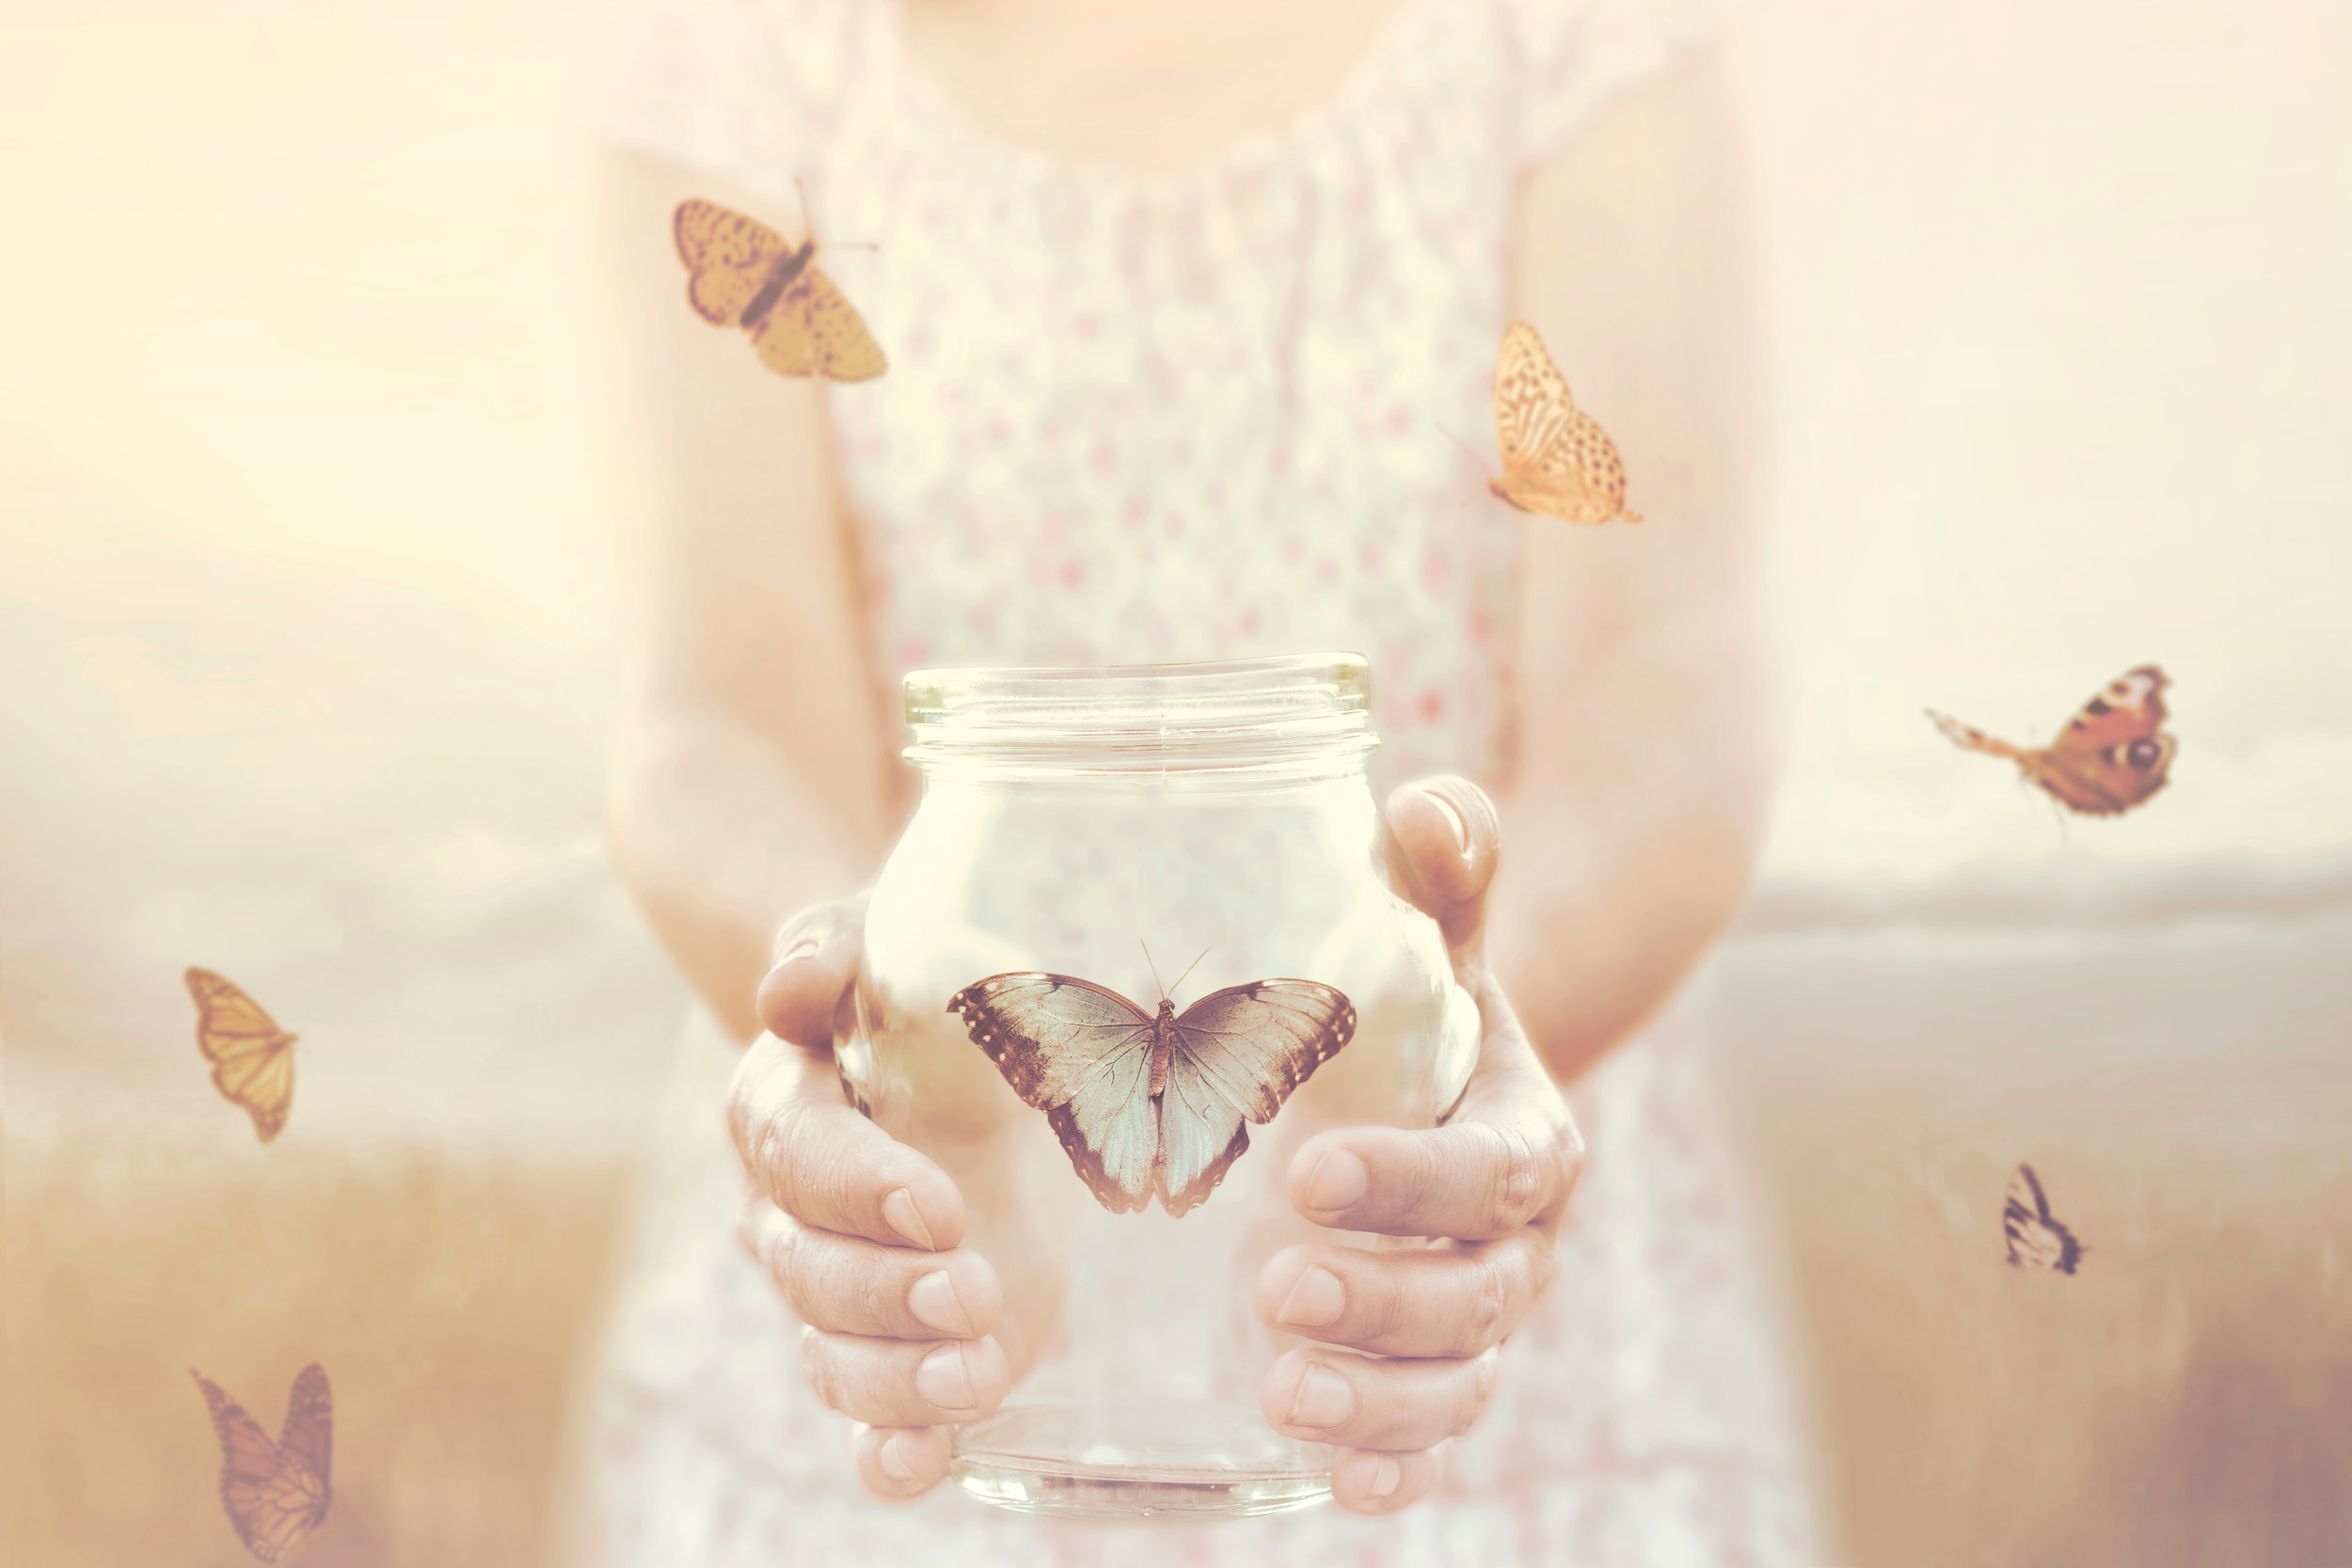 Butterfly in Jar.jpg